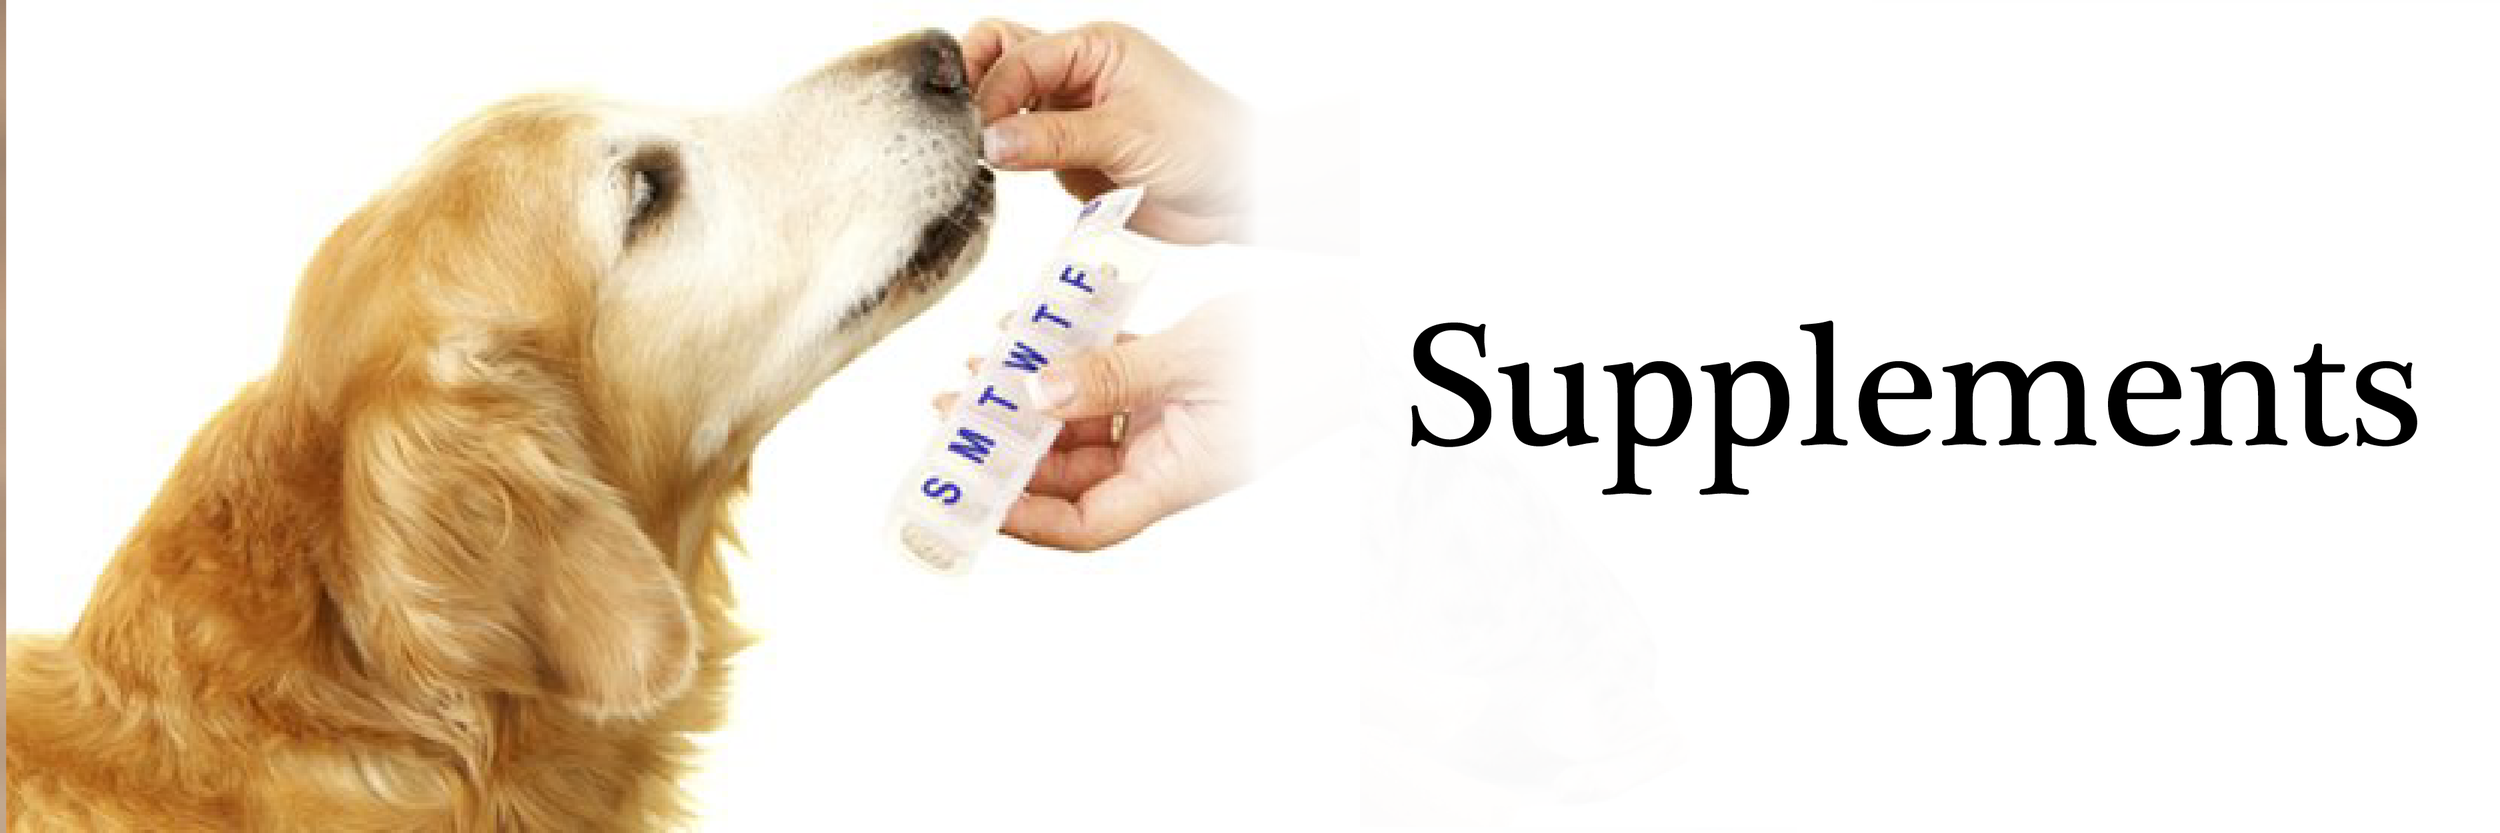 supplements banner-01.png